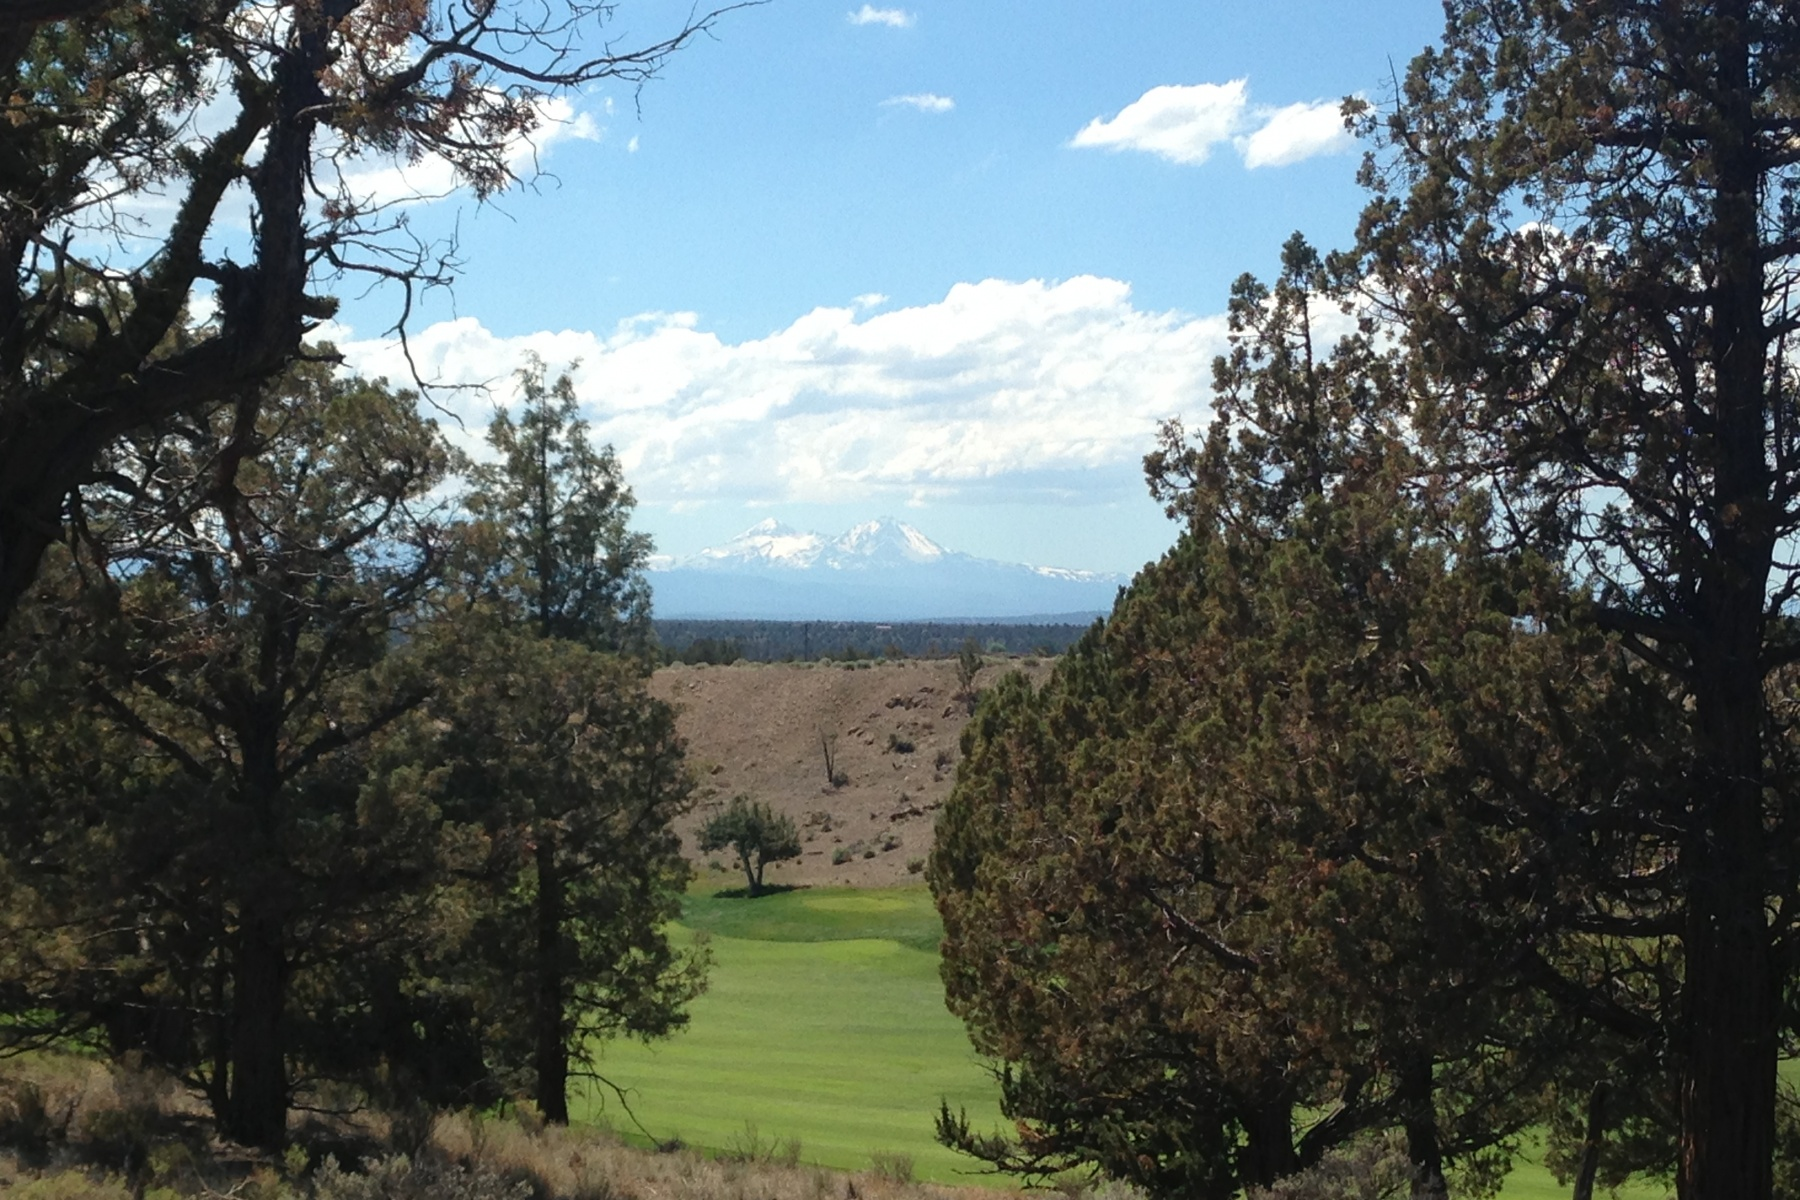 Đất đai vì Bán tại Golf Course Views at Brasada Ranch 15861 SW Wooden Trestle Ct Lot 39 Powell Butte, Oregon, 97753 Hoa Kỳ